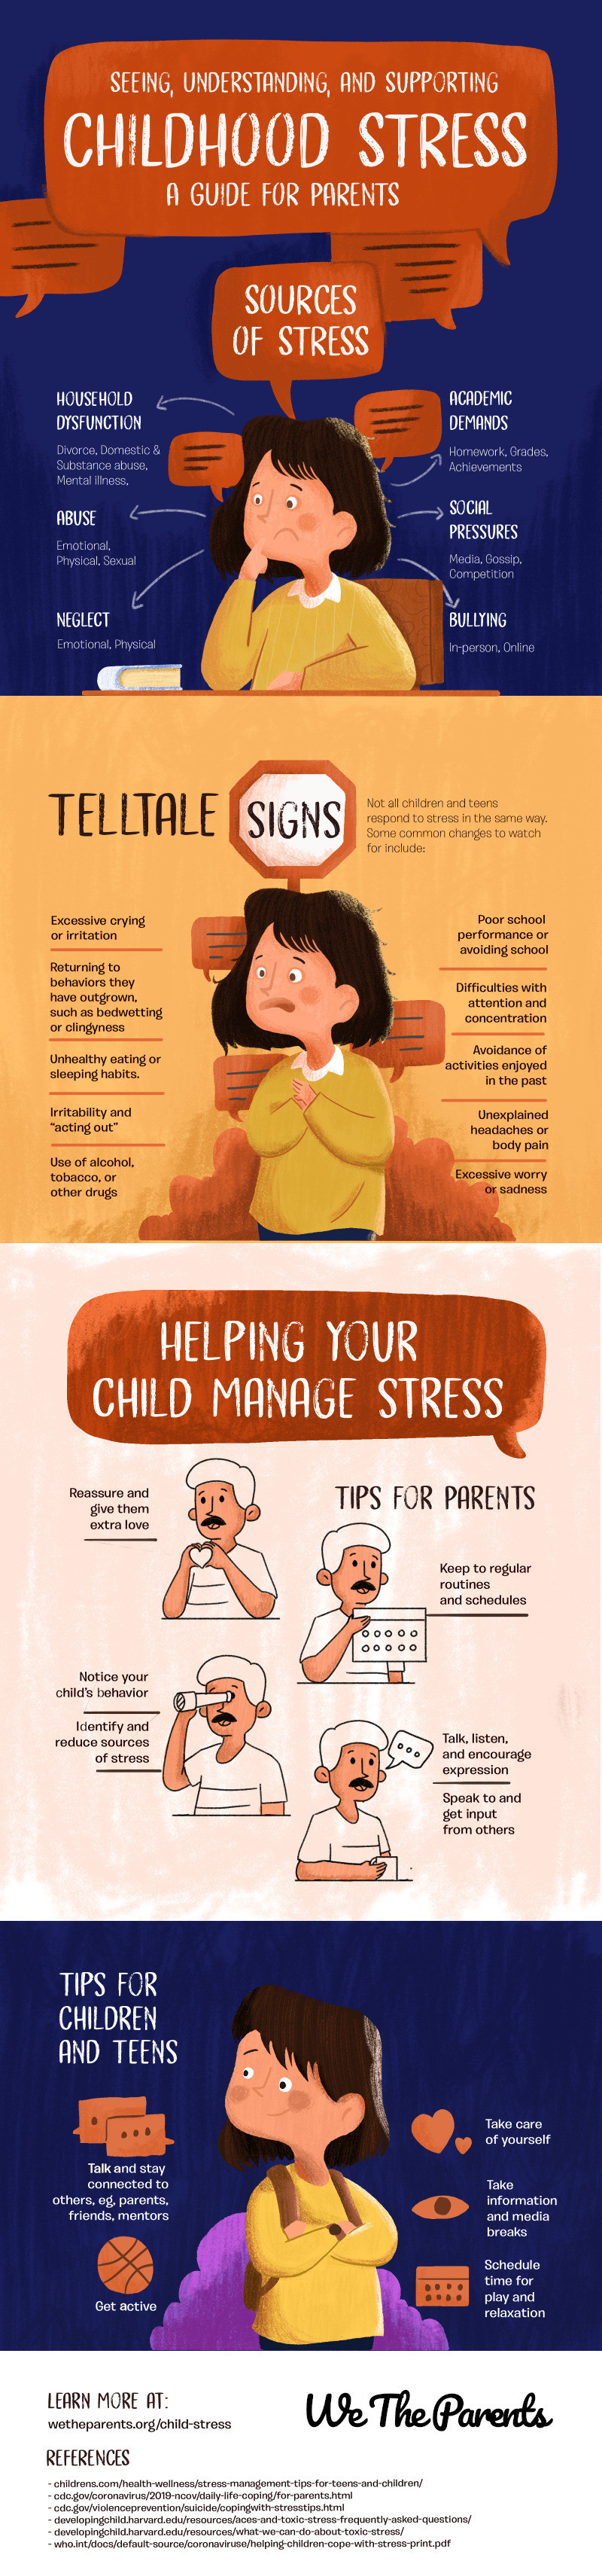 stress, childhood stress, covid, covid-19, coronavirus, pandemic, love, child, toddler, preschool, daycare, early childhood, help children, we the parents